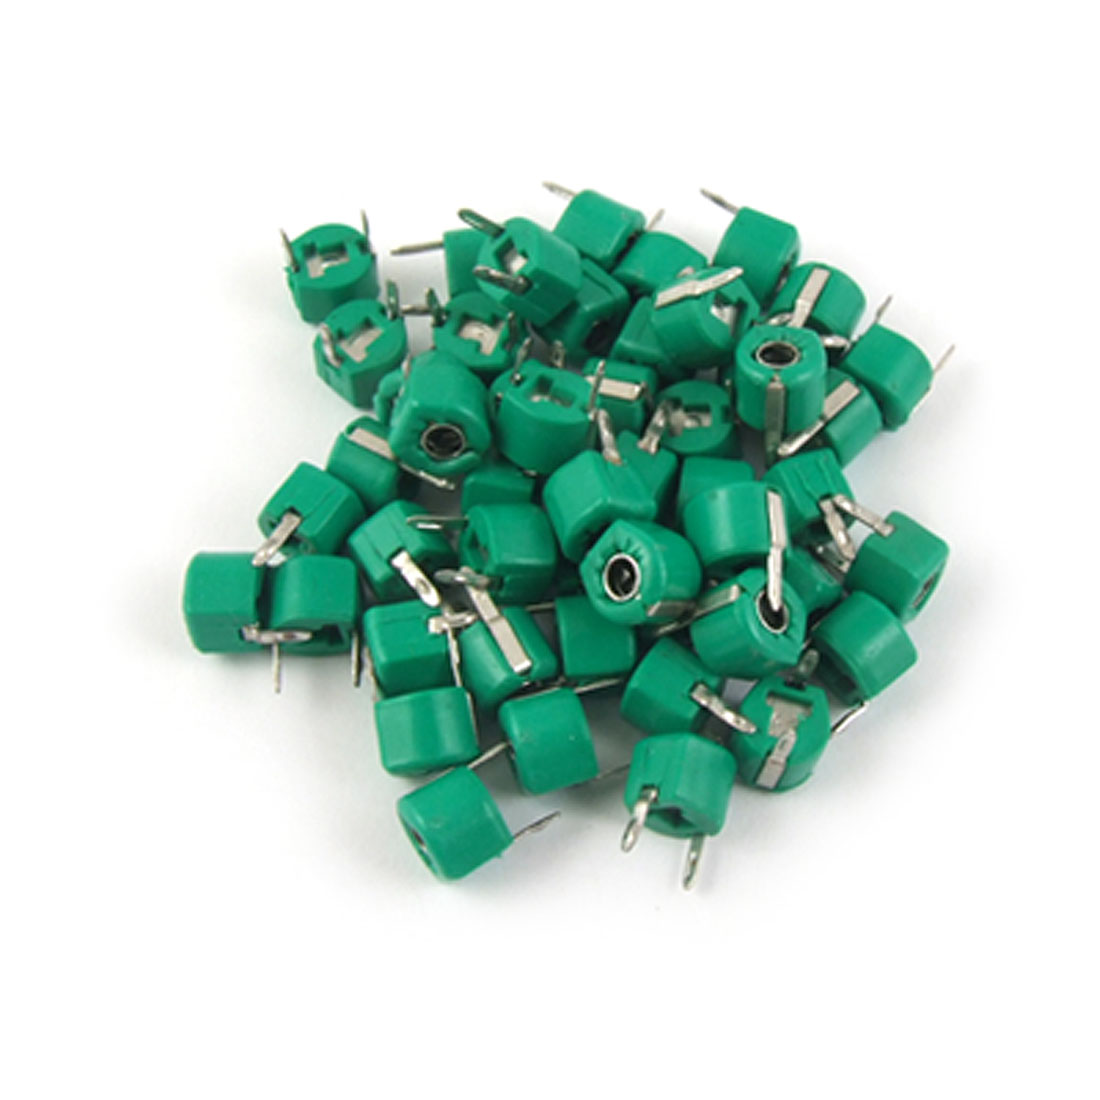 30pF Plastic Green Case Adjustable Trimmer Capacitors 50 Pcs